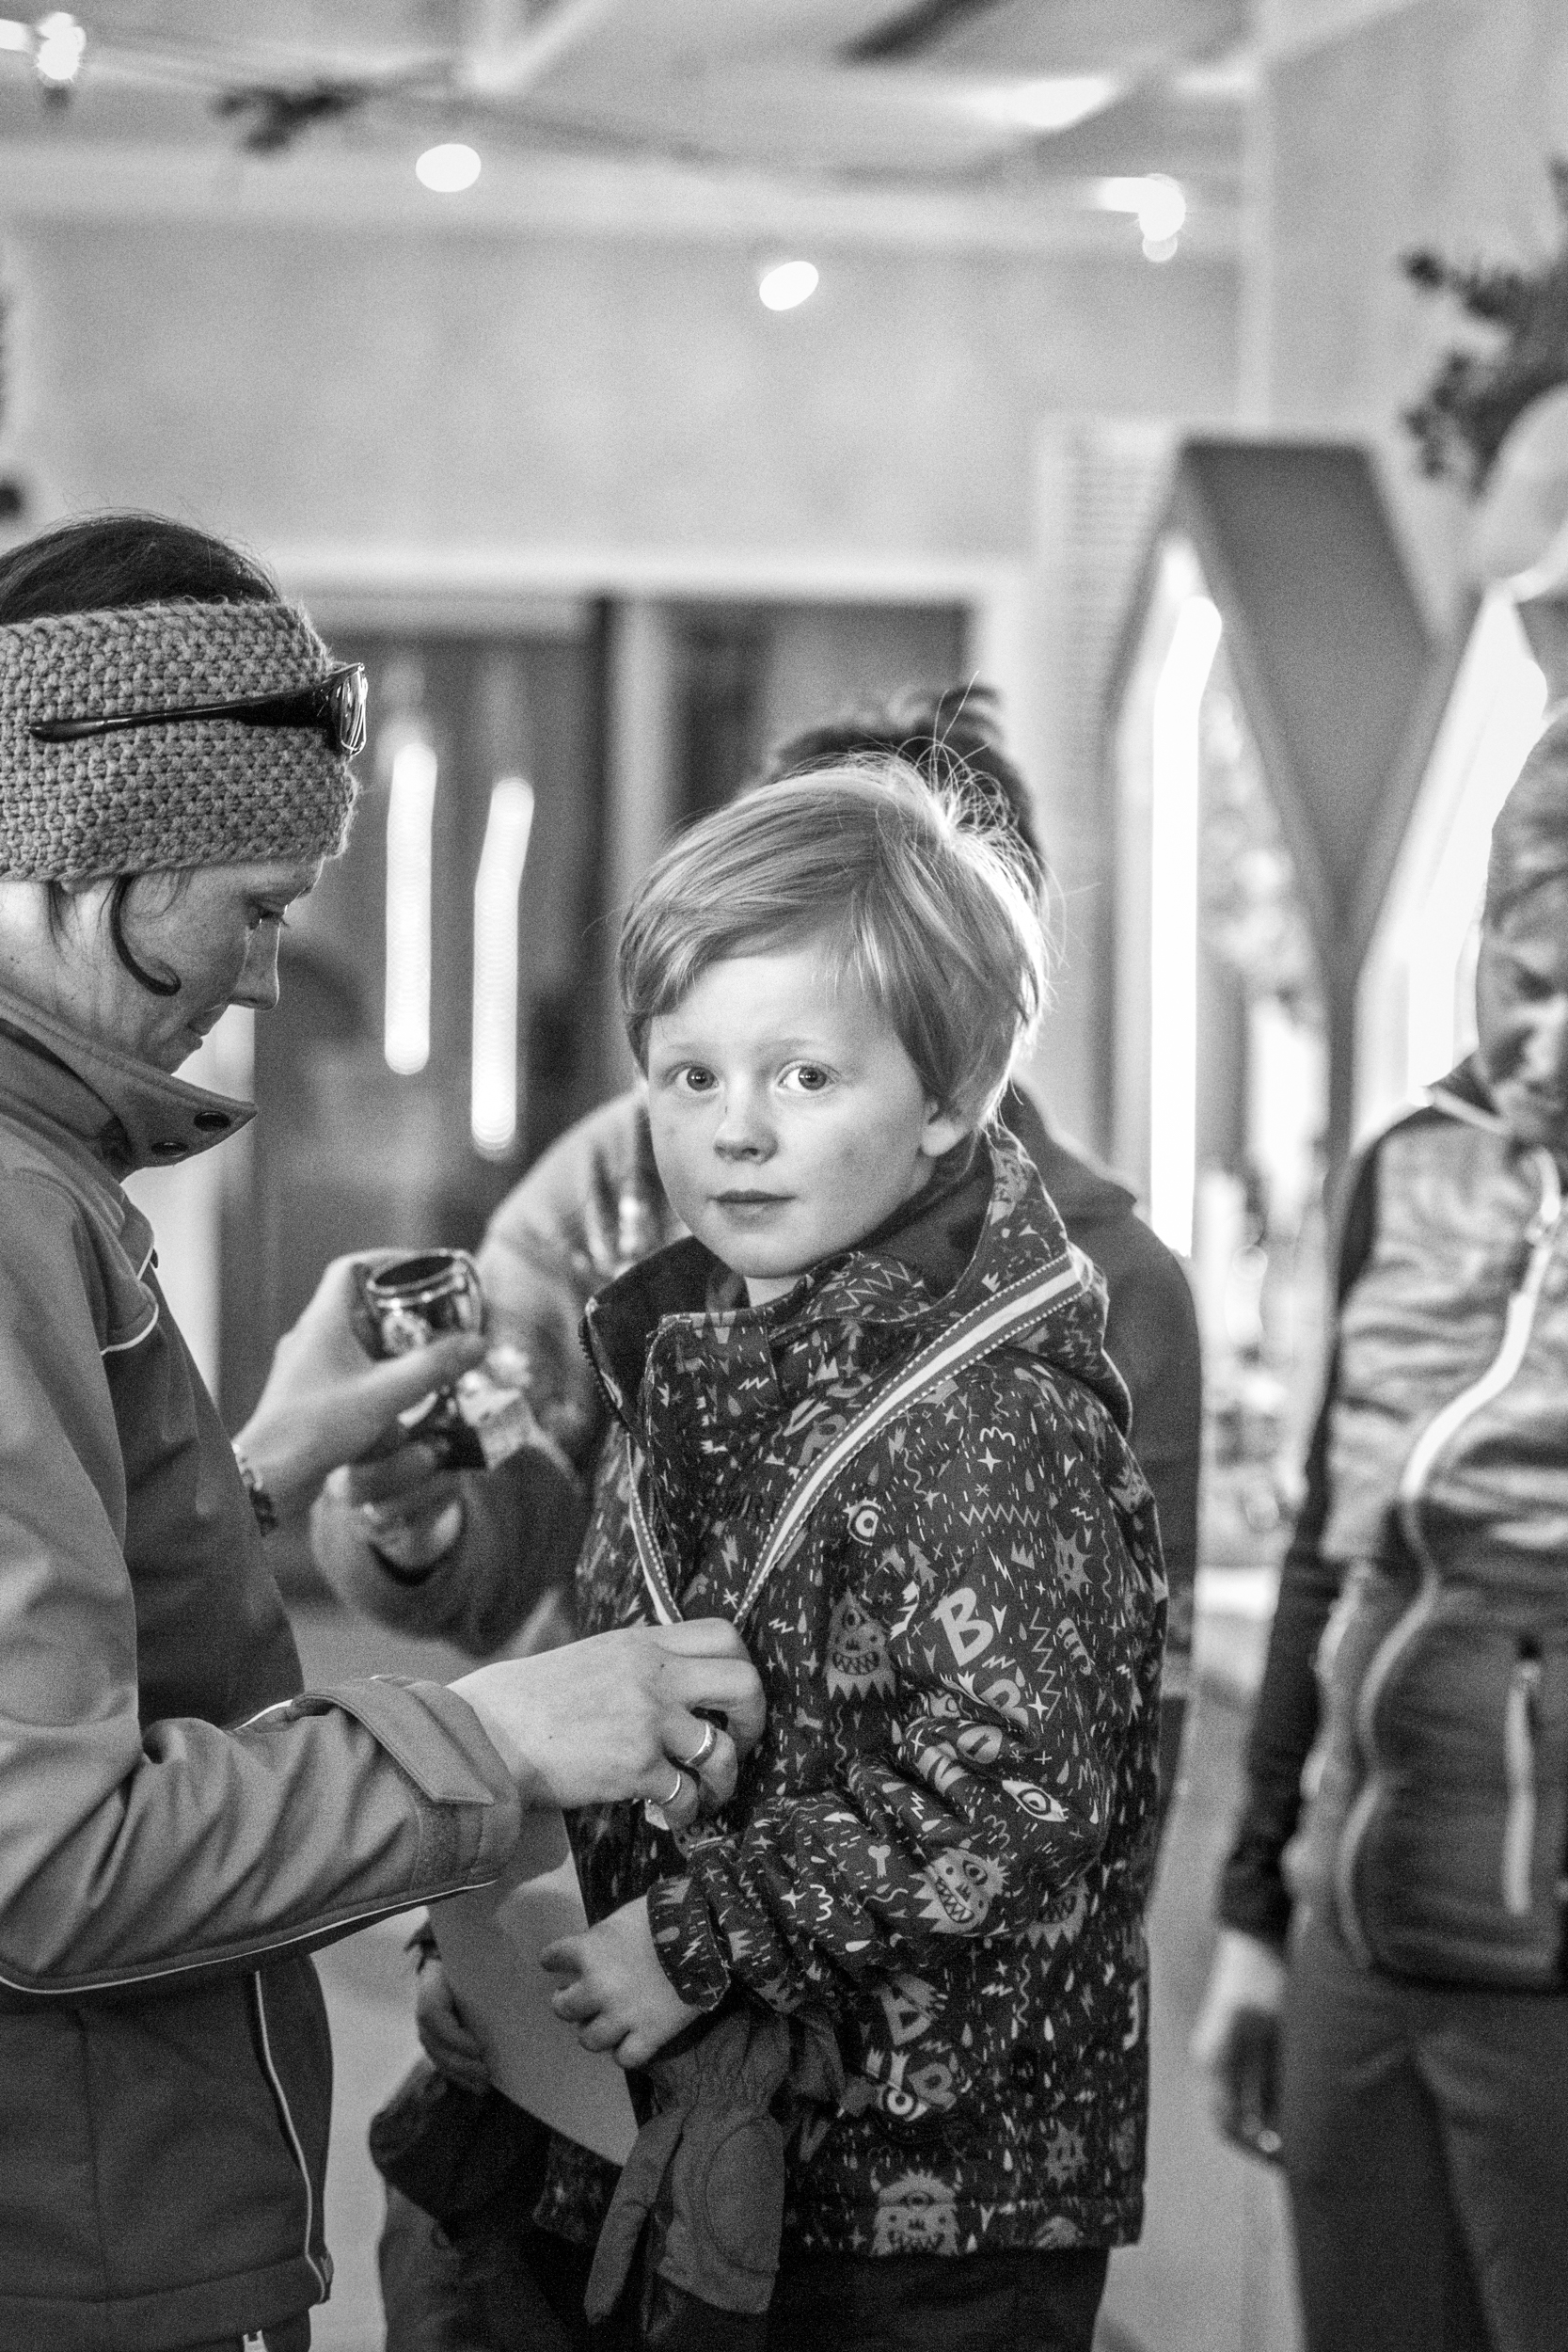 My eldest winning his first medal in a ski race Canon 6d with Sigma 70-200 f2.8 shot @ 1/125 secf3.5 ISO 1600